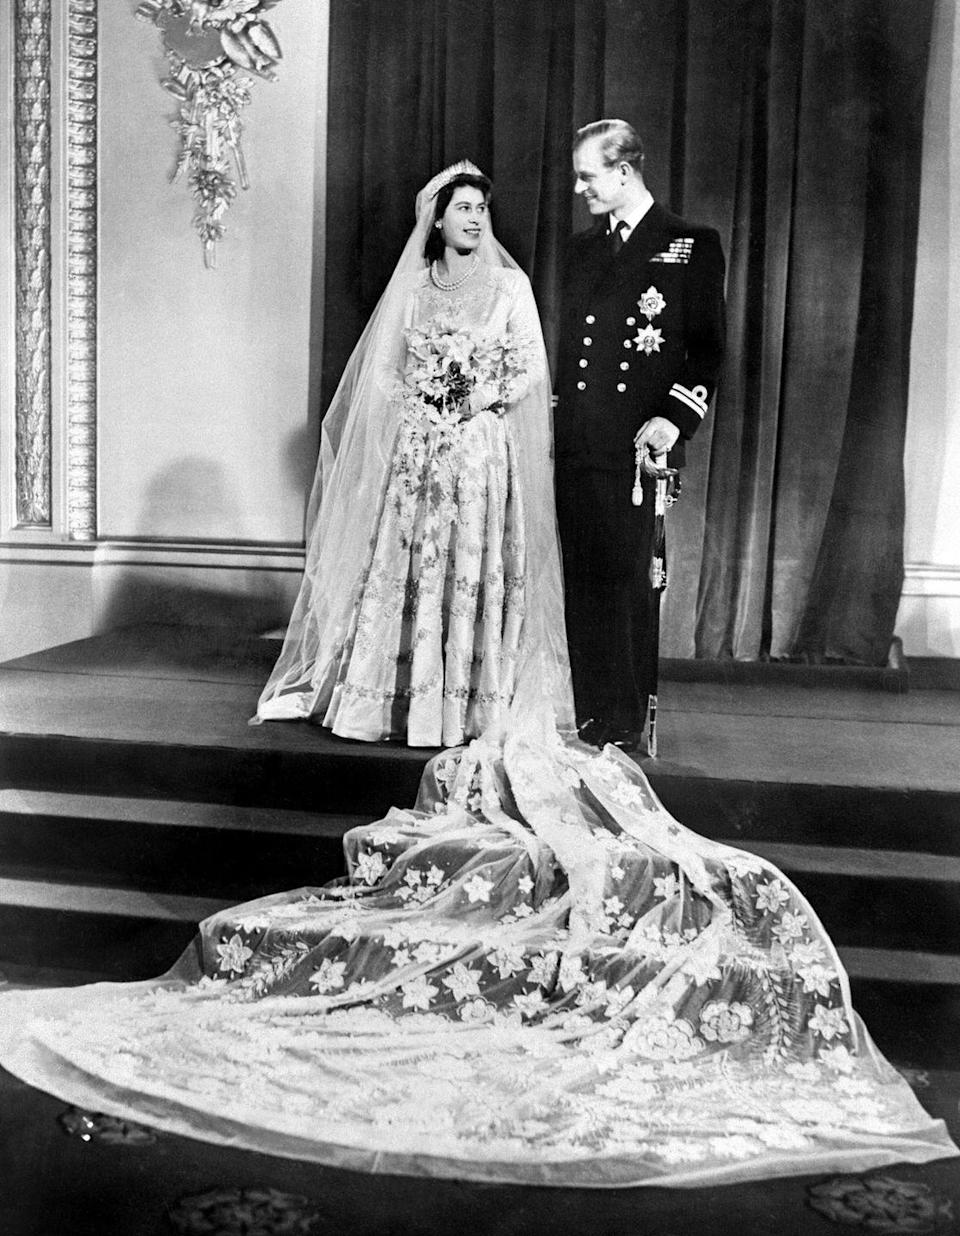 <p>These two knew one another from a young age, as was common when they met in 1934, at the wedding of of Princess Marina of Greece (Philip's cousin) and the Duke of Kent (Elizabeth's uncle). At the time, Elizabeth was 8, and Phillip was 13.</p><p>Five years later, when King George V! visited Dartmouth College, Prince Phillip was enlisted to entertain his daughter, whom he had met at a wedding years prior. The two connected, and the rest is history.</p>